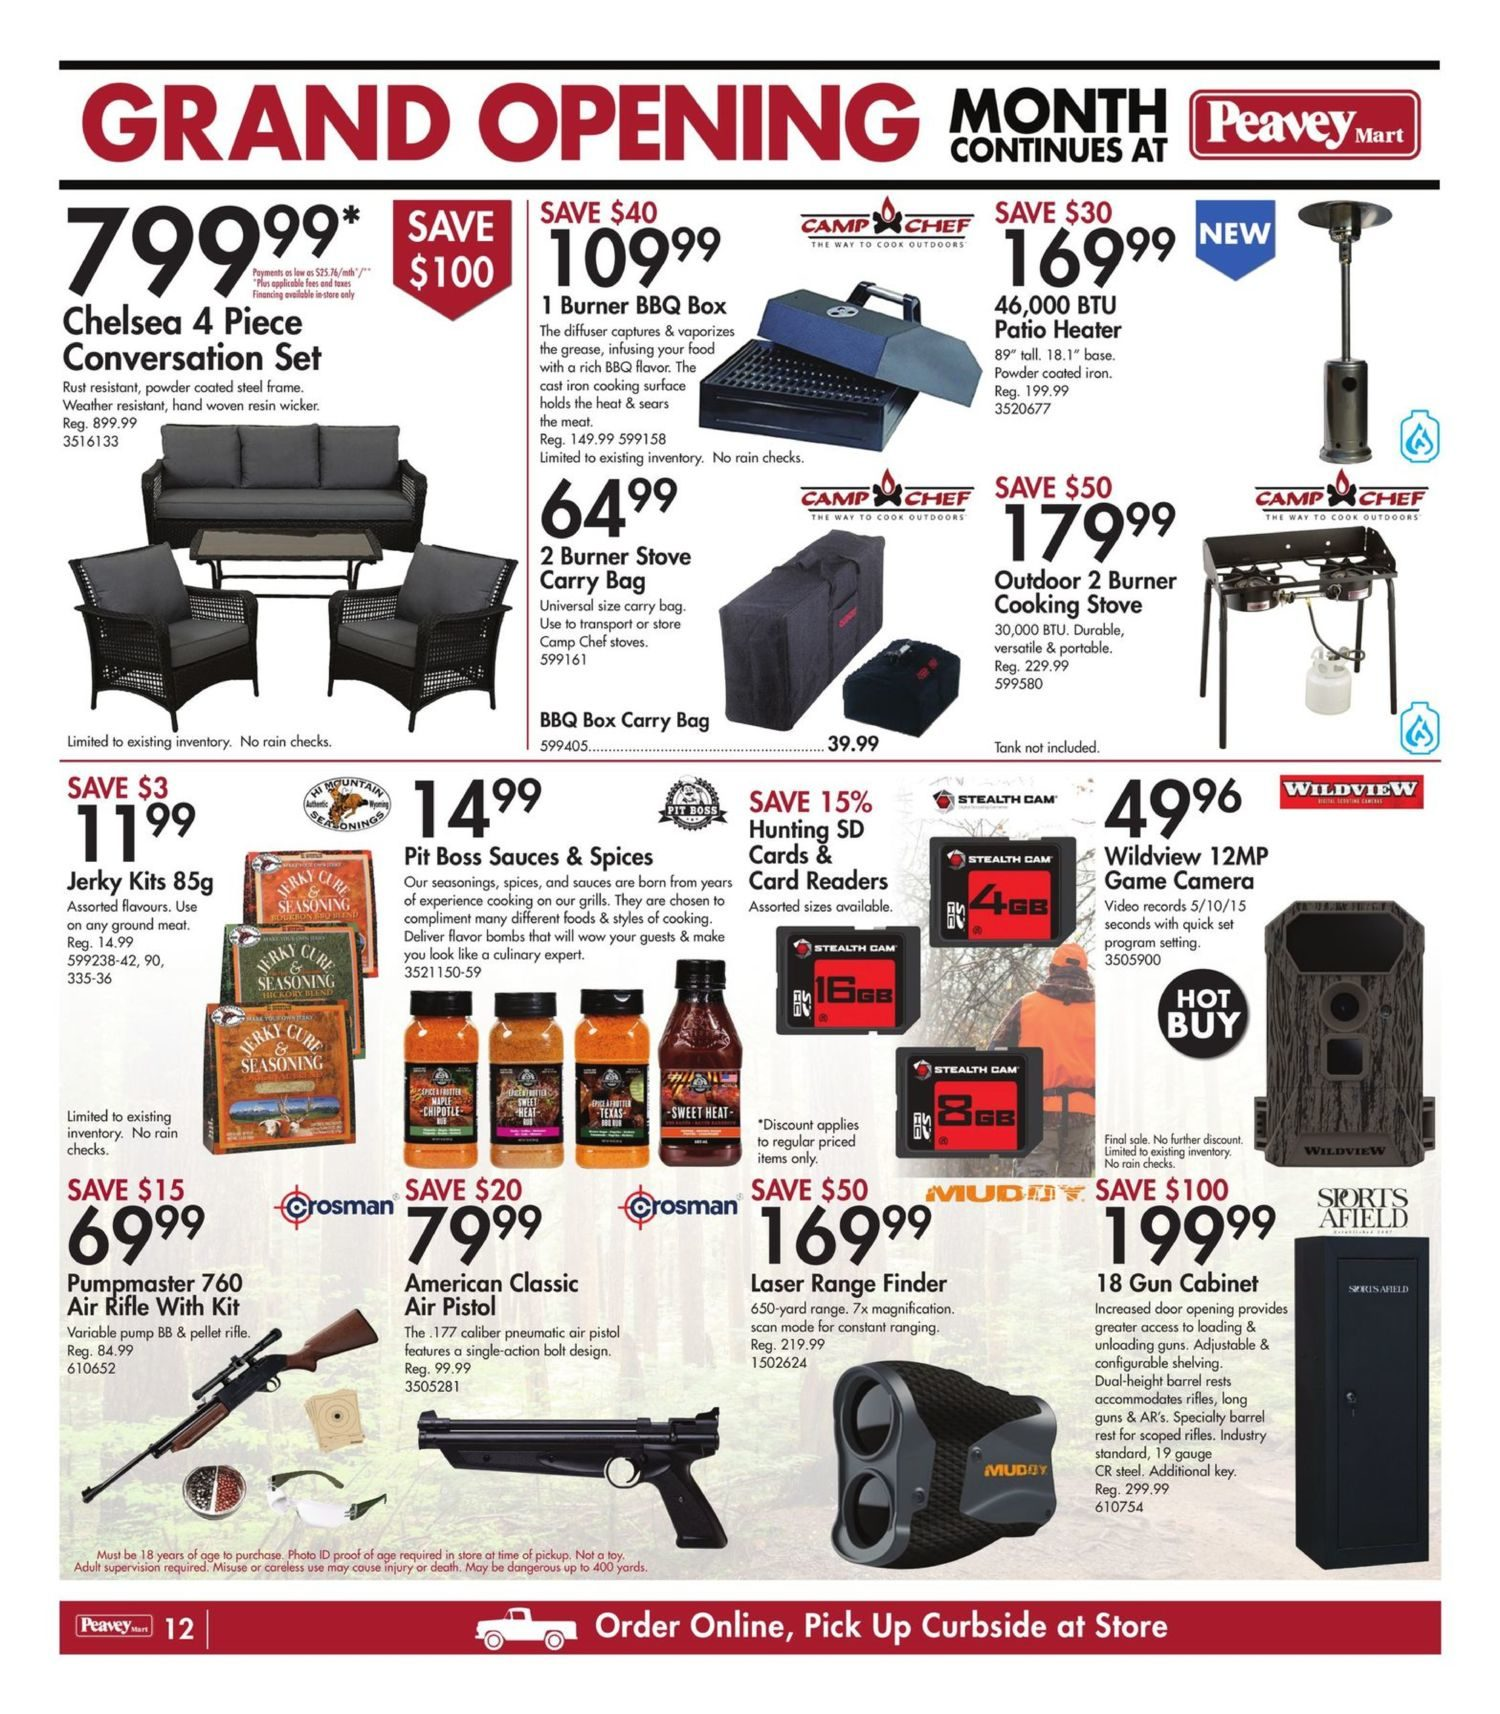 Peavey Mart - Weekly Flyer Specials - National Grand Opening Celebration - Page 15